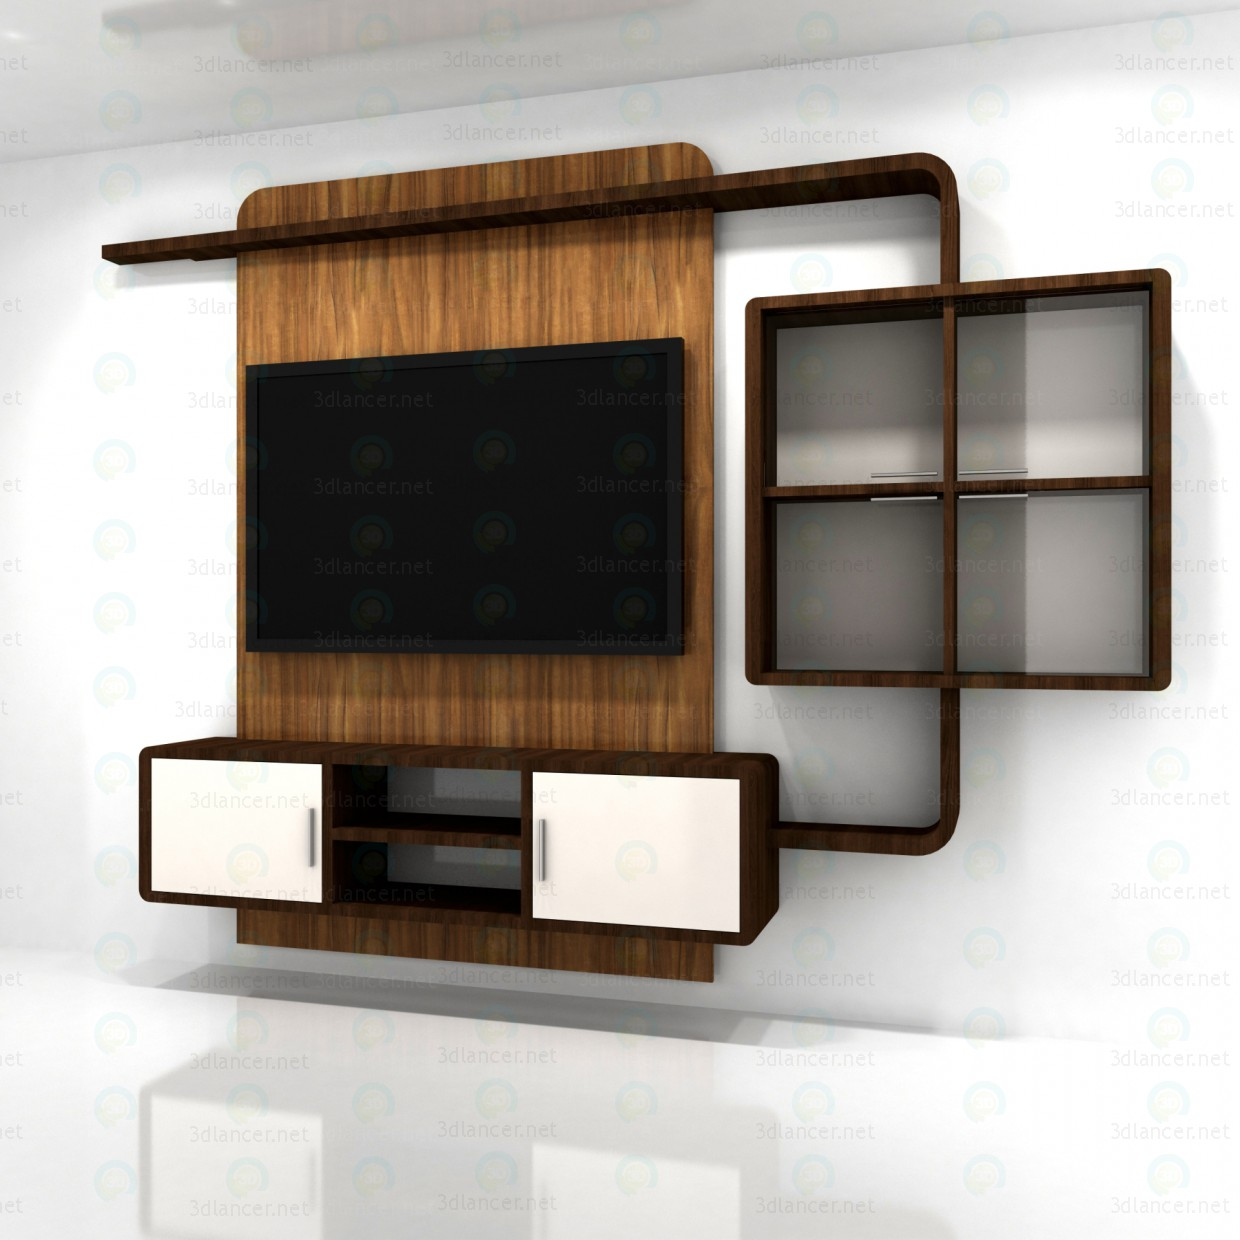 3d model living room furniture style high tech download for Model furniture